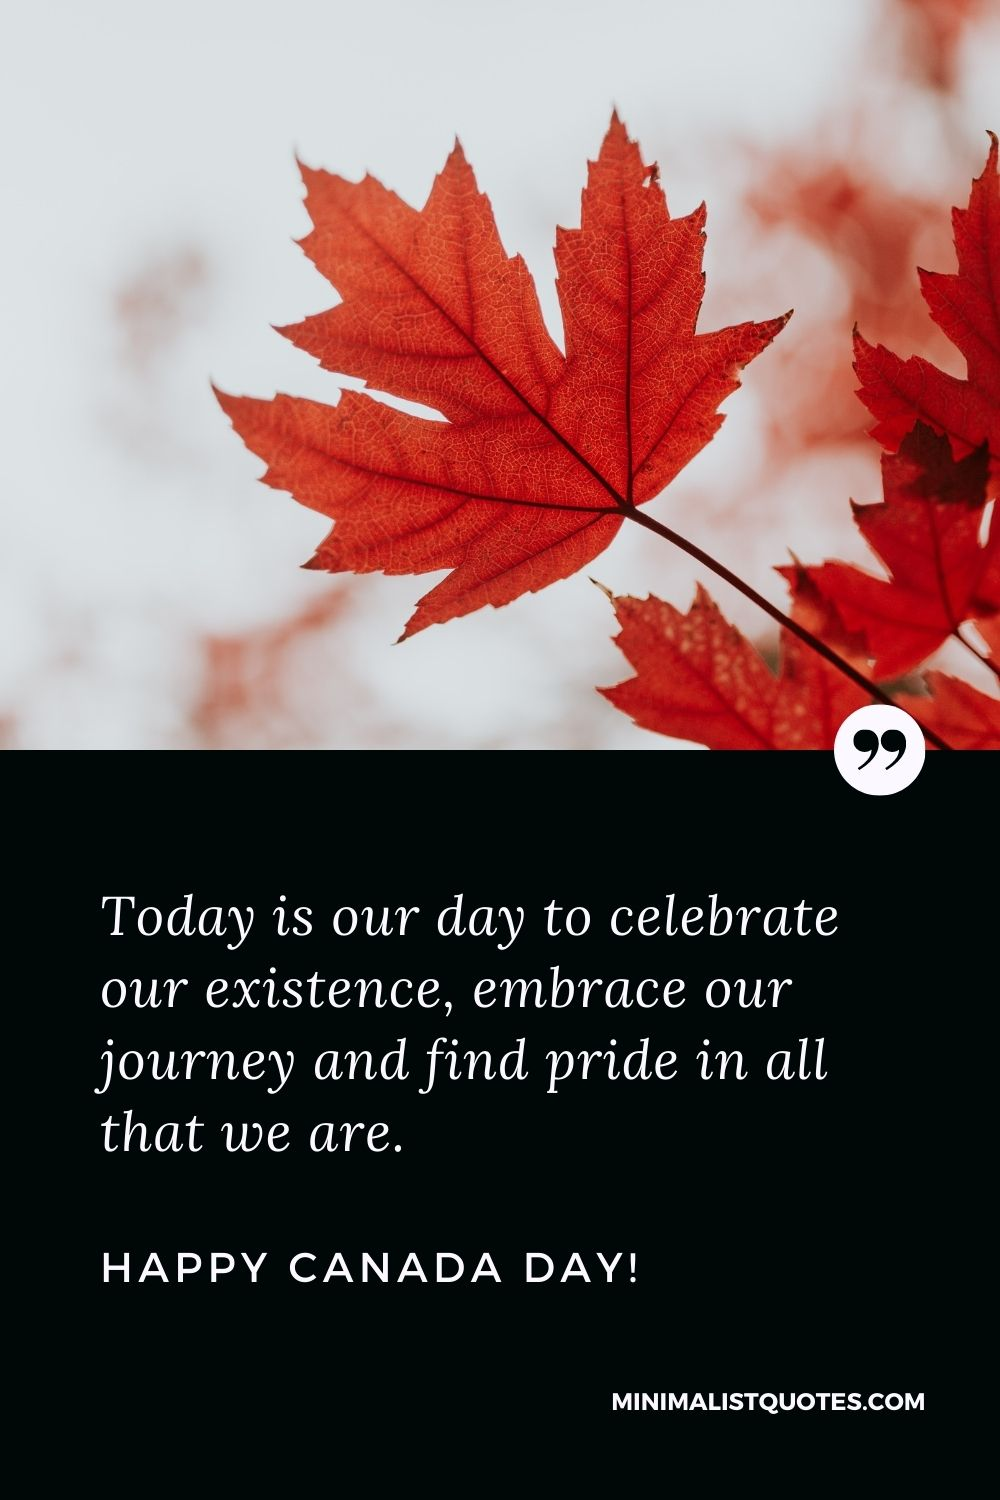 Canada day greetings: Today is our day to celebrate our existence, embrace our journey and find pride in all that we are. Happy Canada Day!